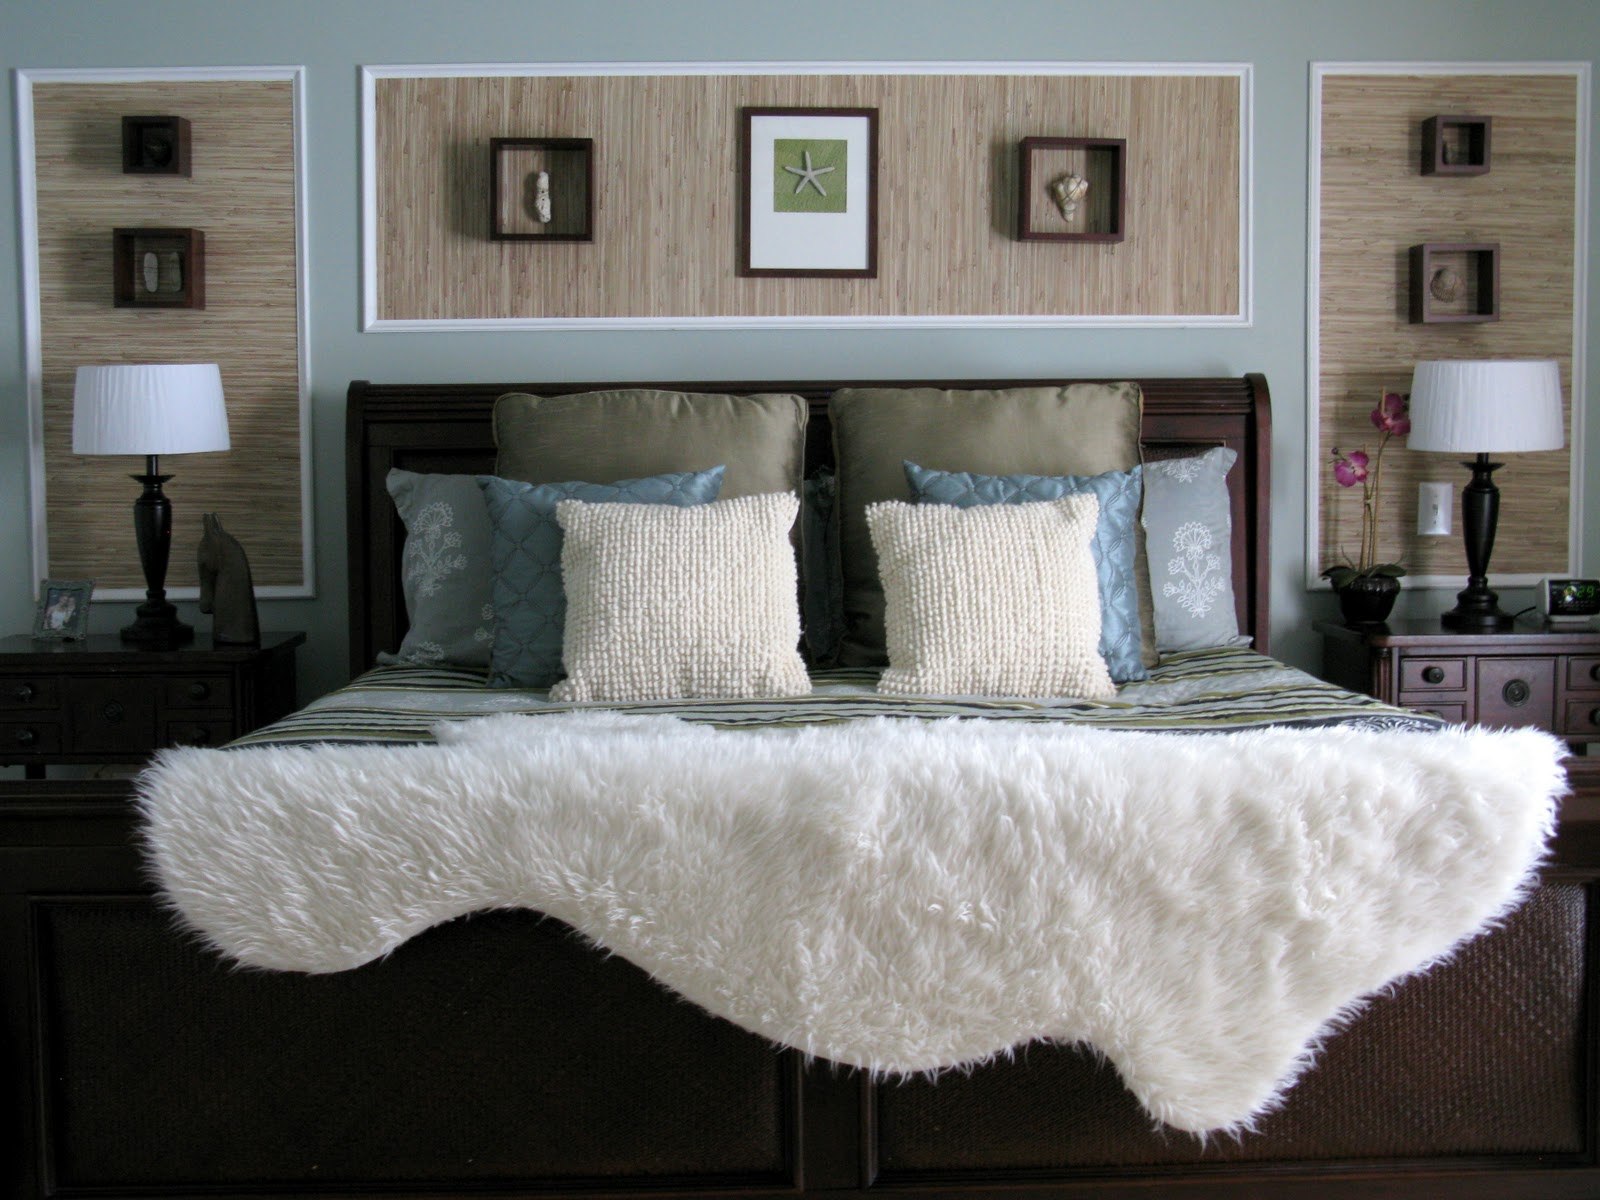 loveyourroom voted one of the top bedrooms by houzz readers my headboard canopy ideas are on